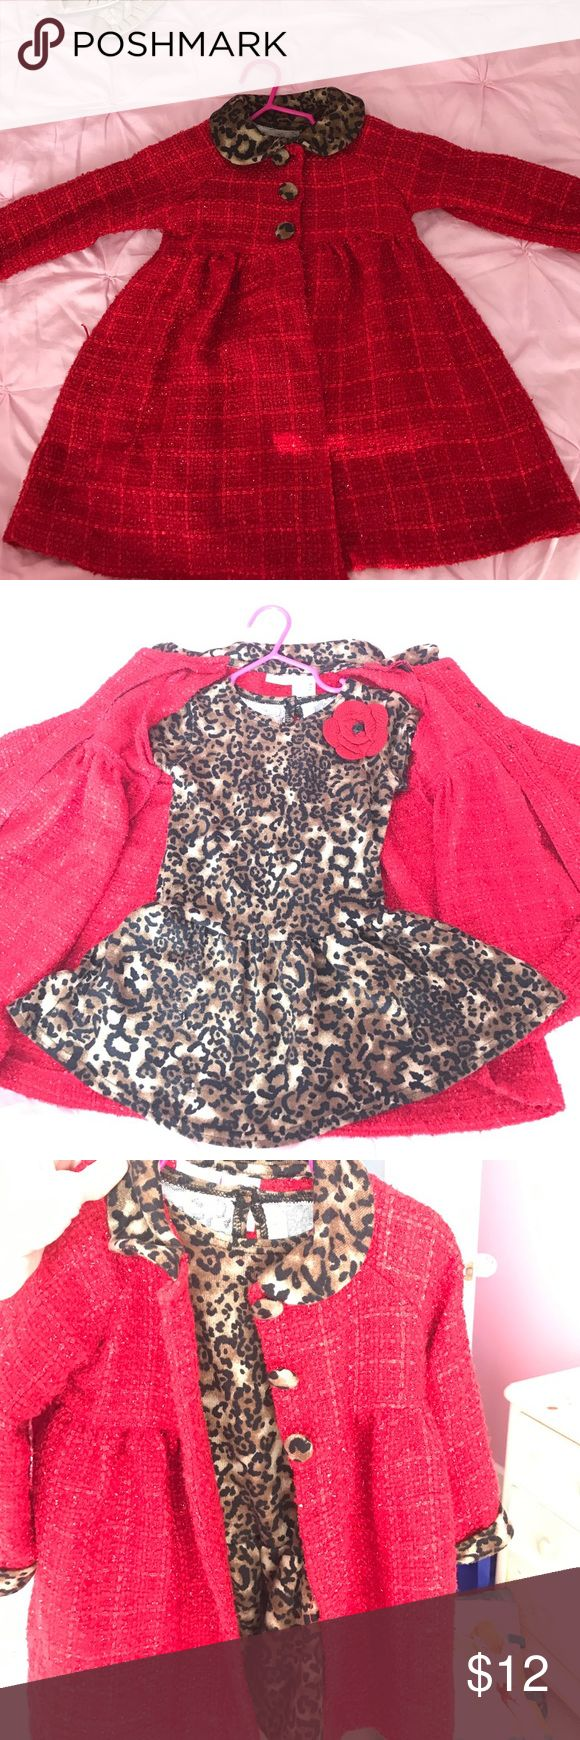 Red Coat and Cheetah Dress 24 Month red coat and cheetah dress. Super cute combo! Sweet Heart Rose Dresses